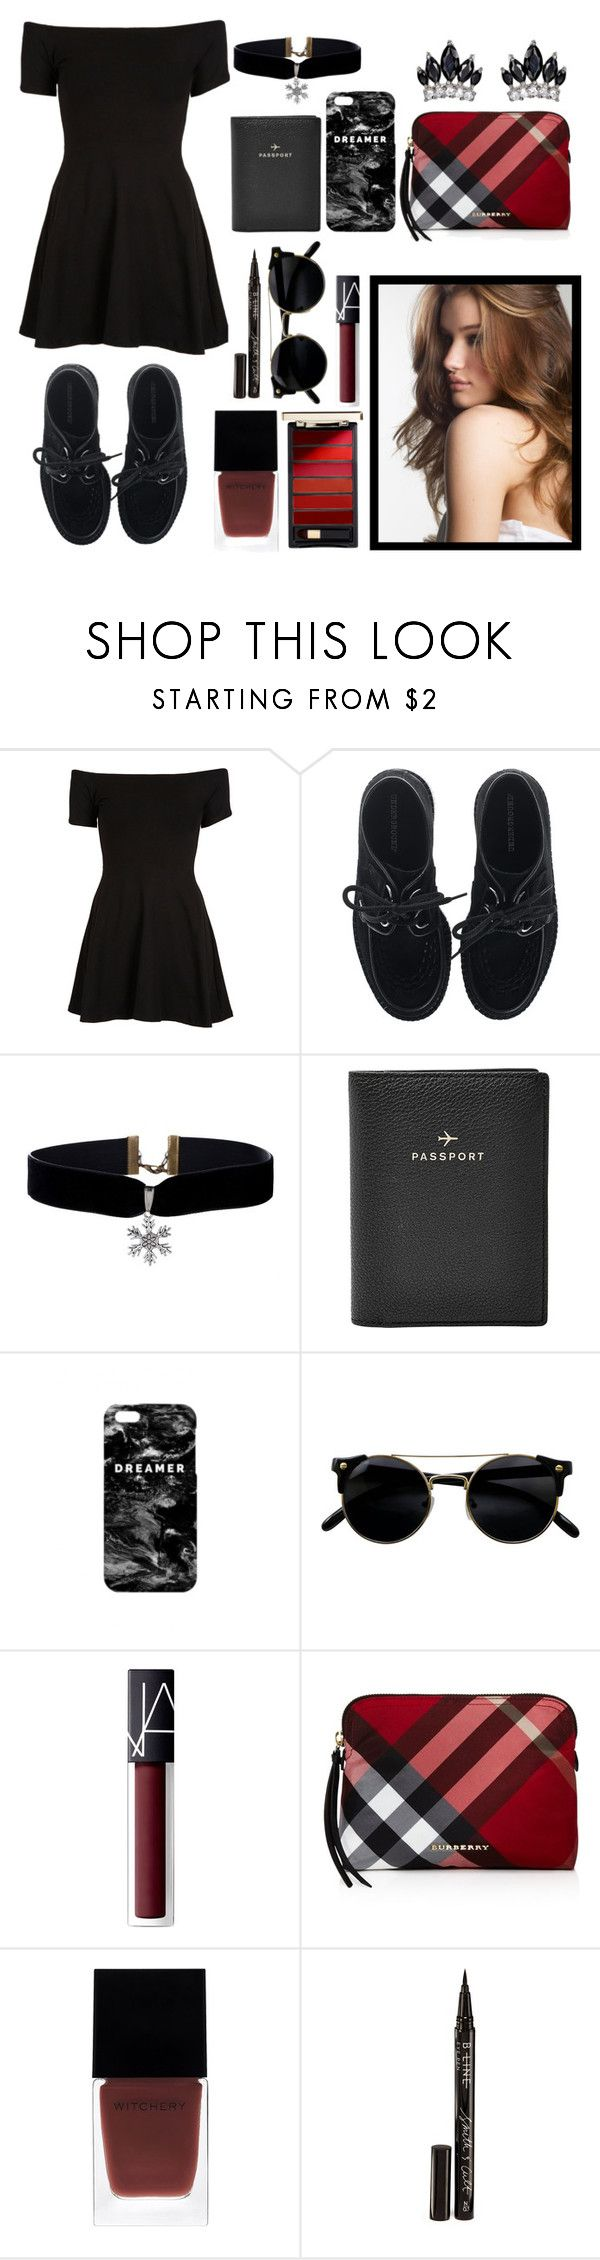 """45445"" by supegirl55 ❤ liked on Polyvore featuring beauty, Motel, Underground, FOSSIL, Mr. Gugu & Miss Go, NARS Cosmetics, Burberry, Witchery, Smith & Cult and Fallon"